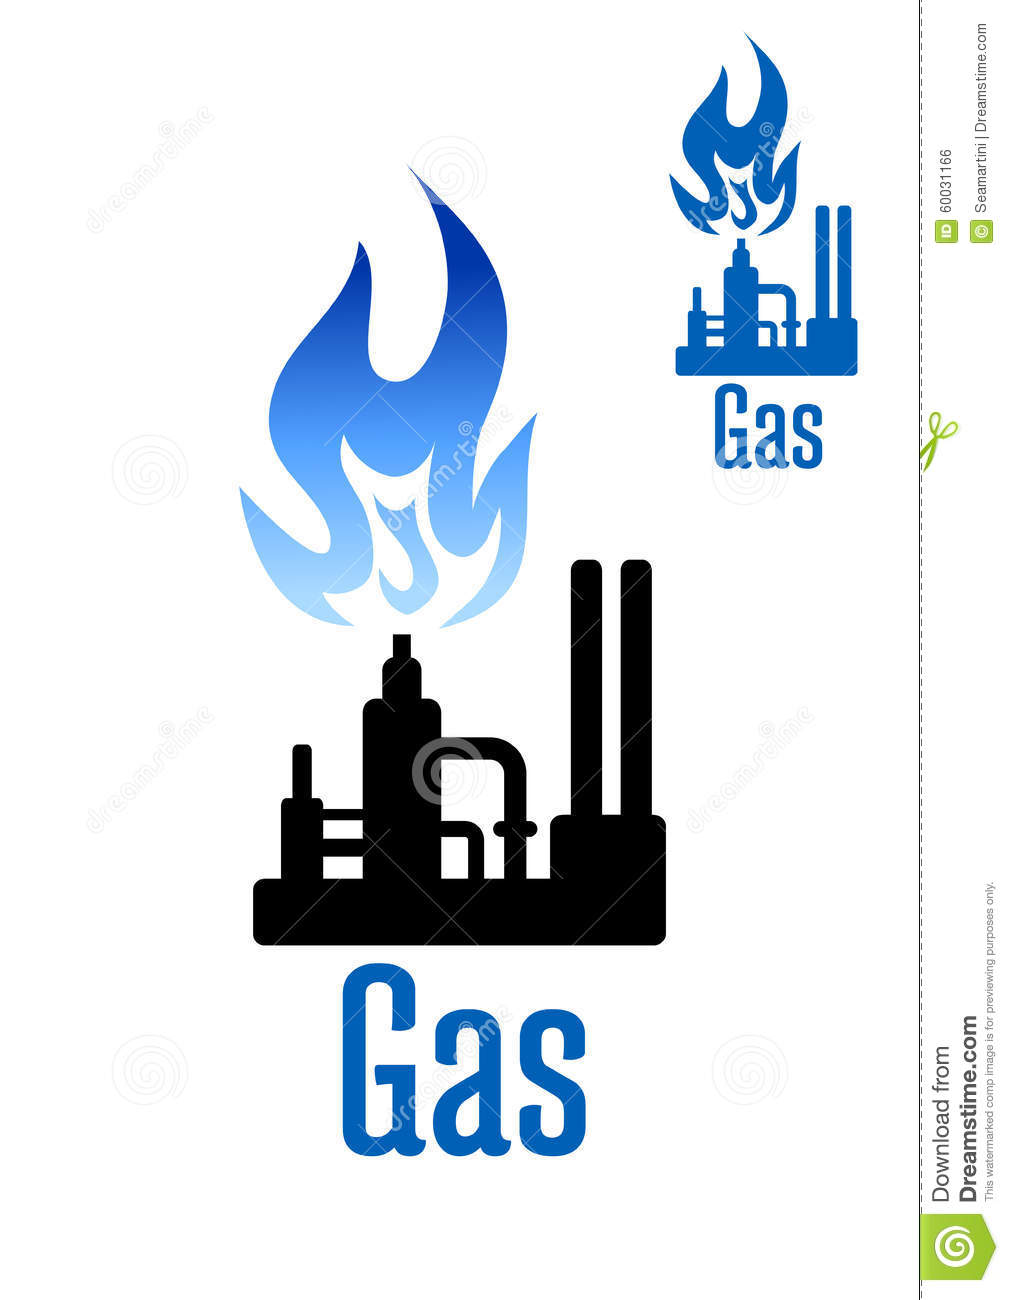 Natural Gas Processing Plant Equipment